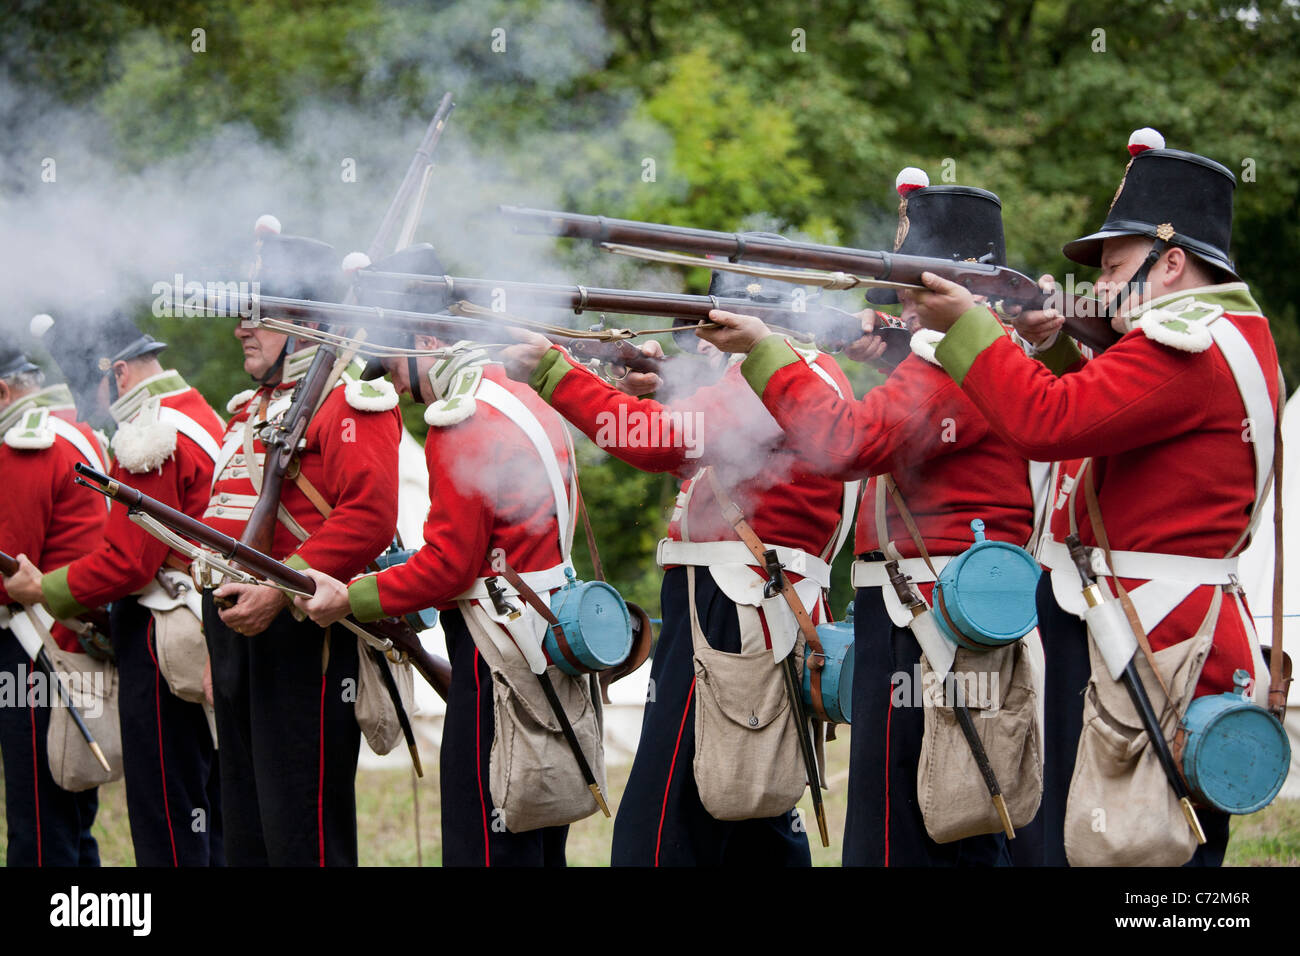 The 19th Regiment of Foot (re-enactors) at the Cromford Heritage Weekend, Derbyshire, England, UK - Stock Image